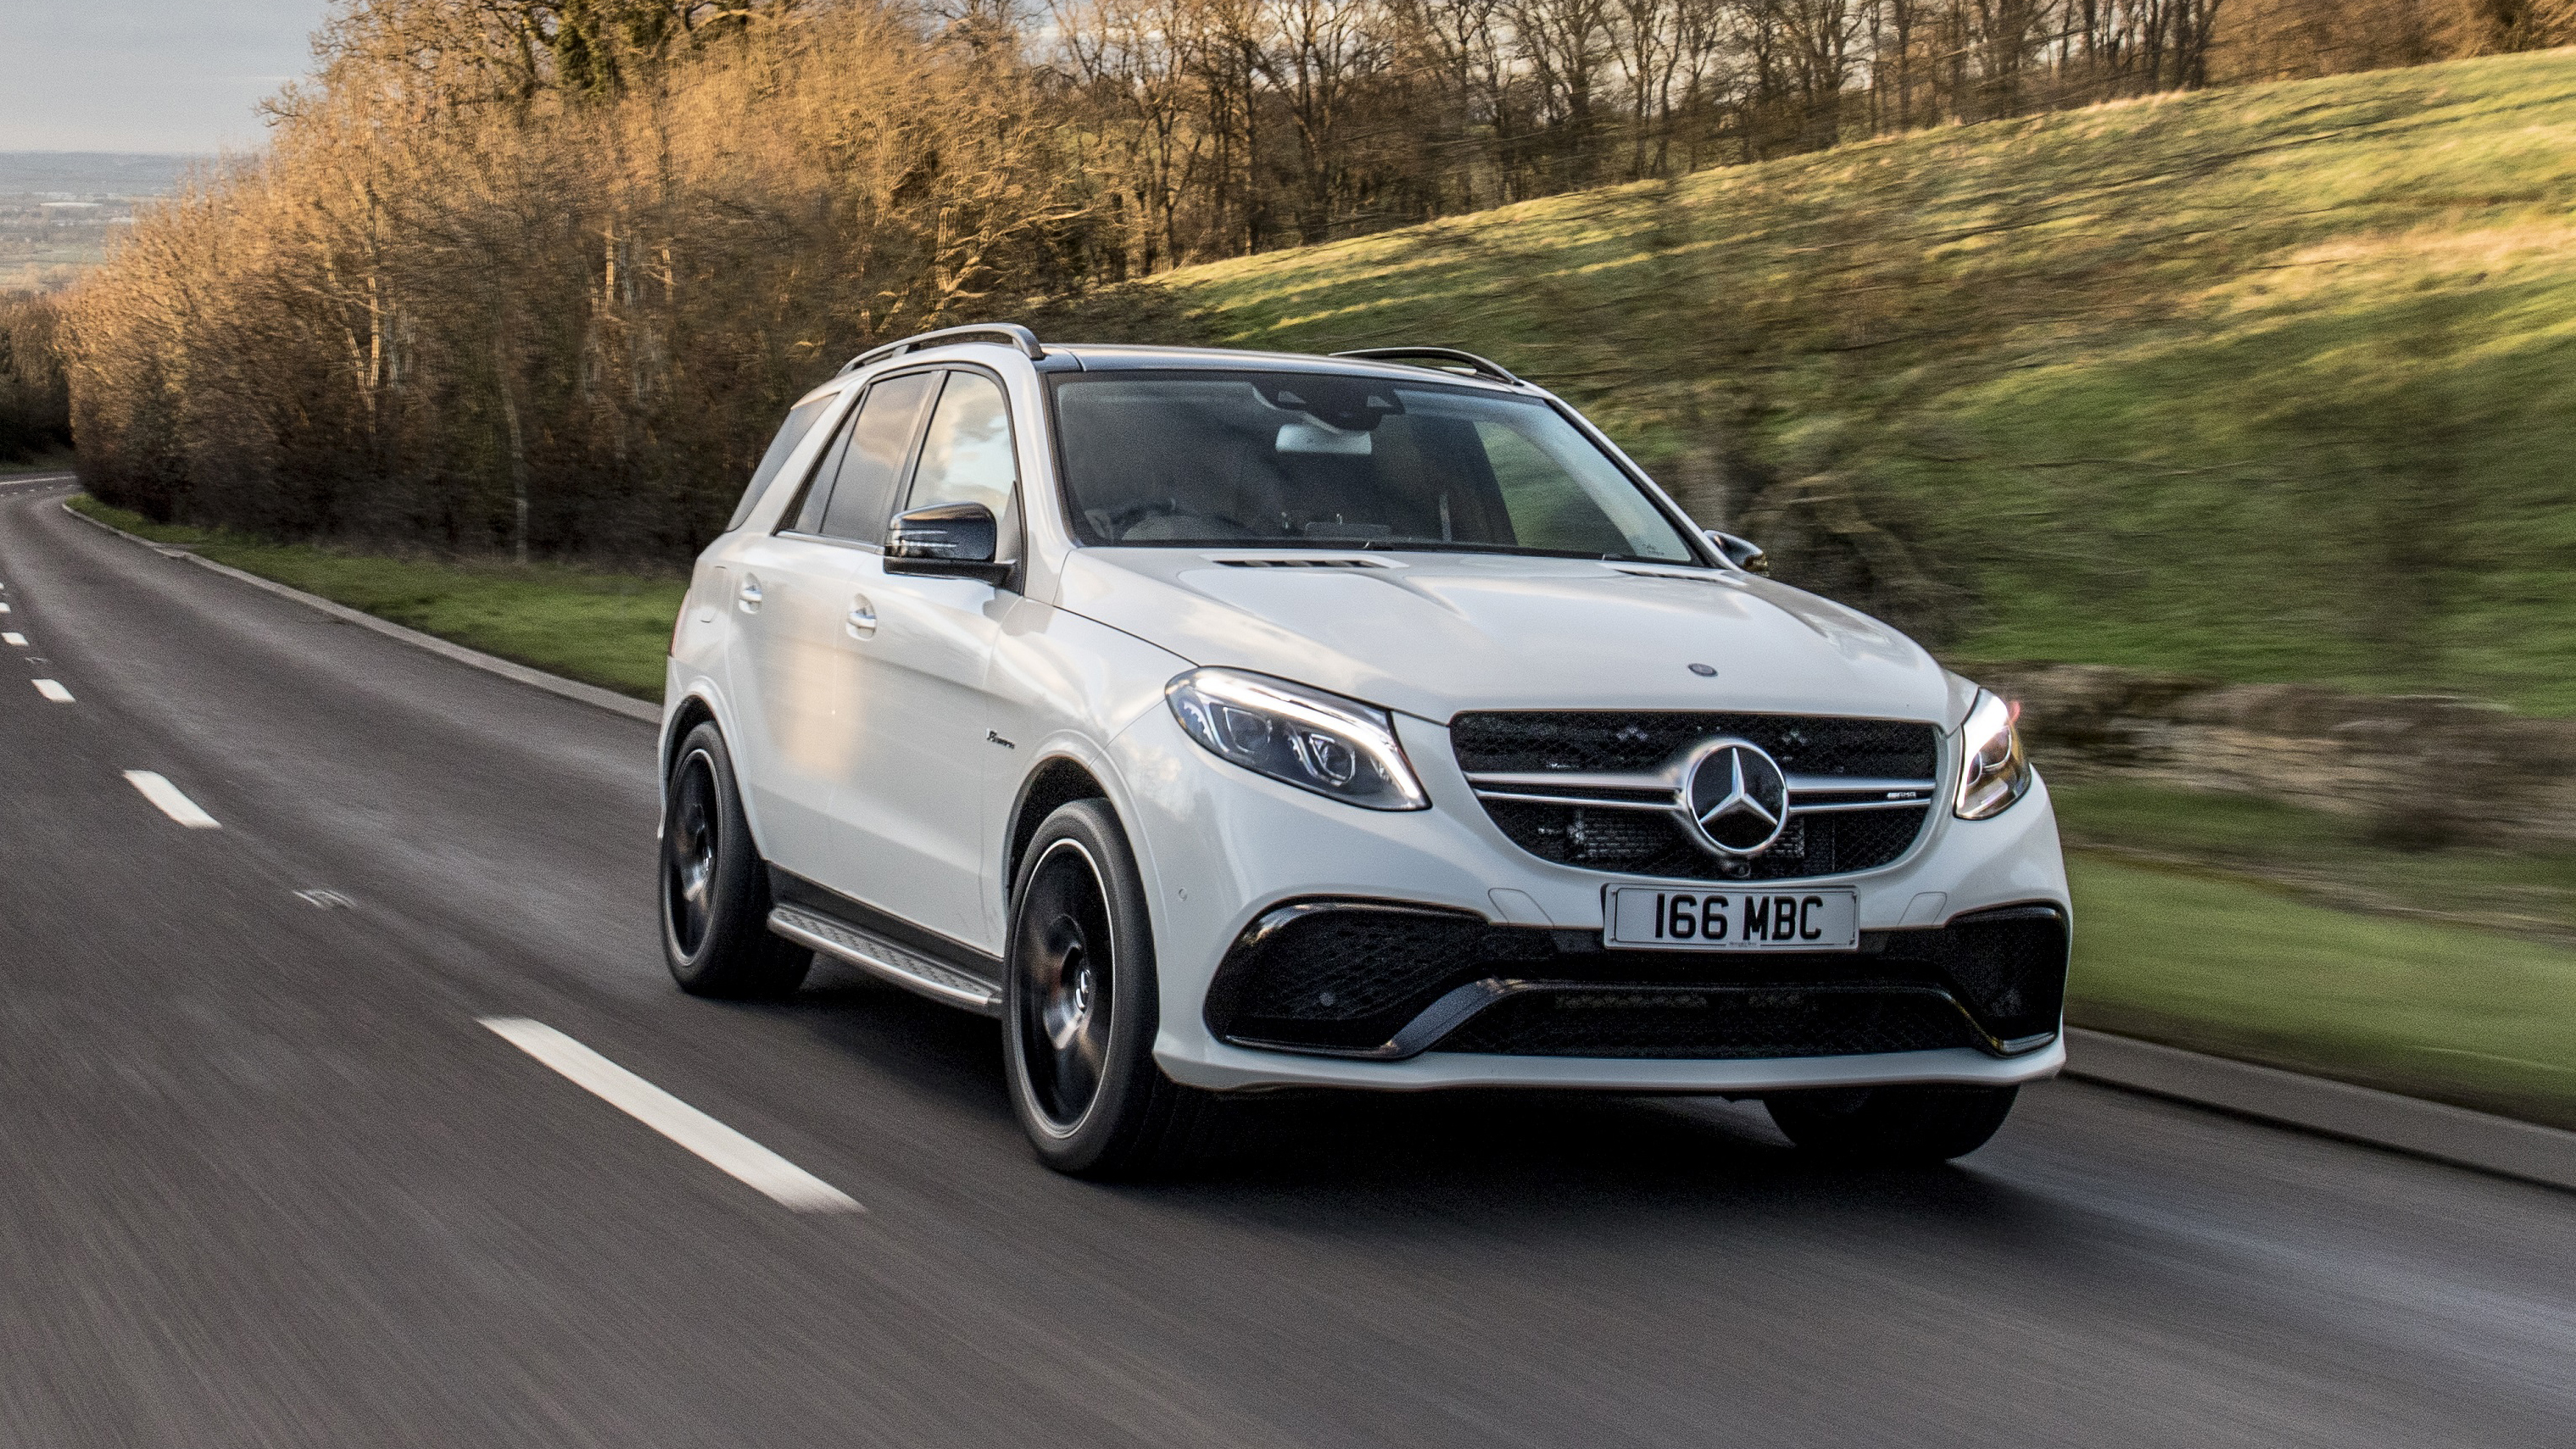 Mercedes Dealer Used Cars Uk